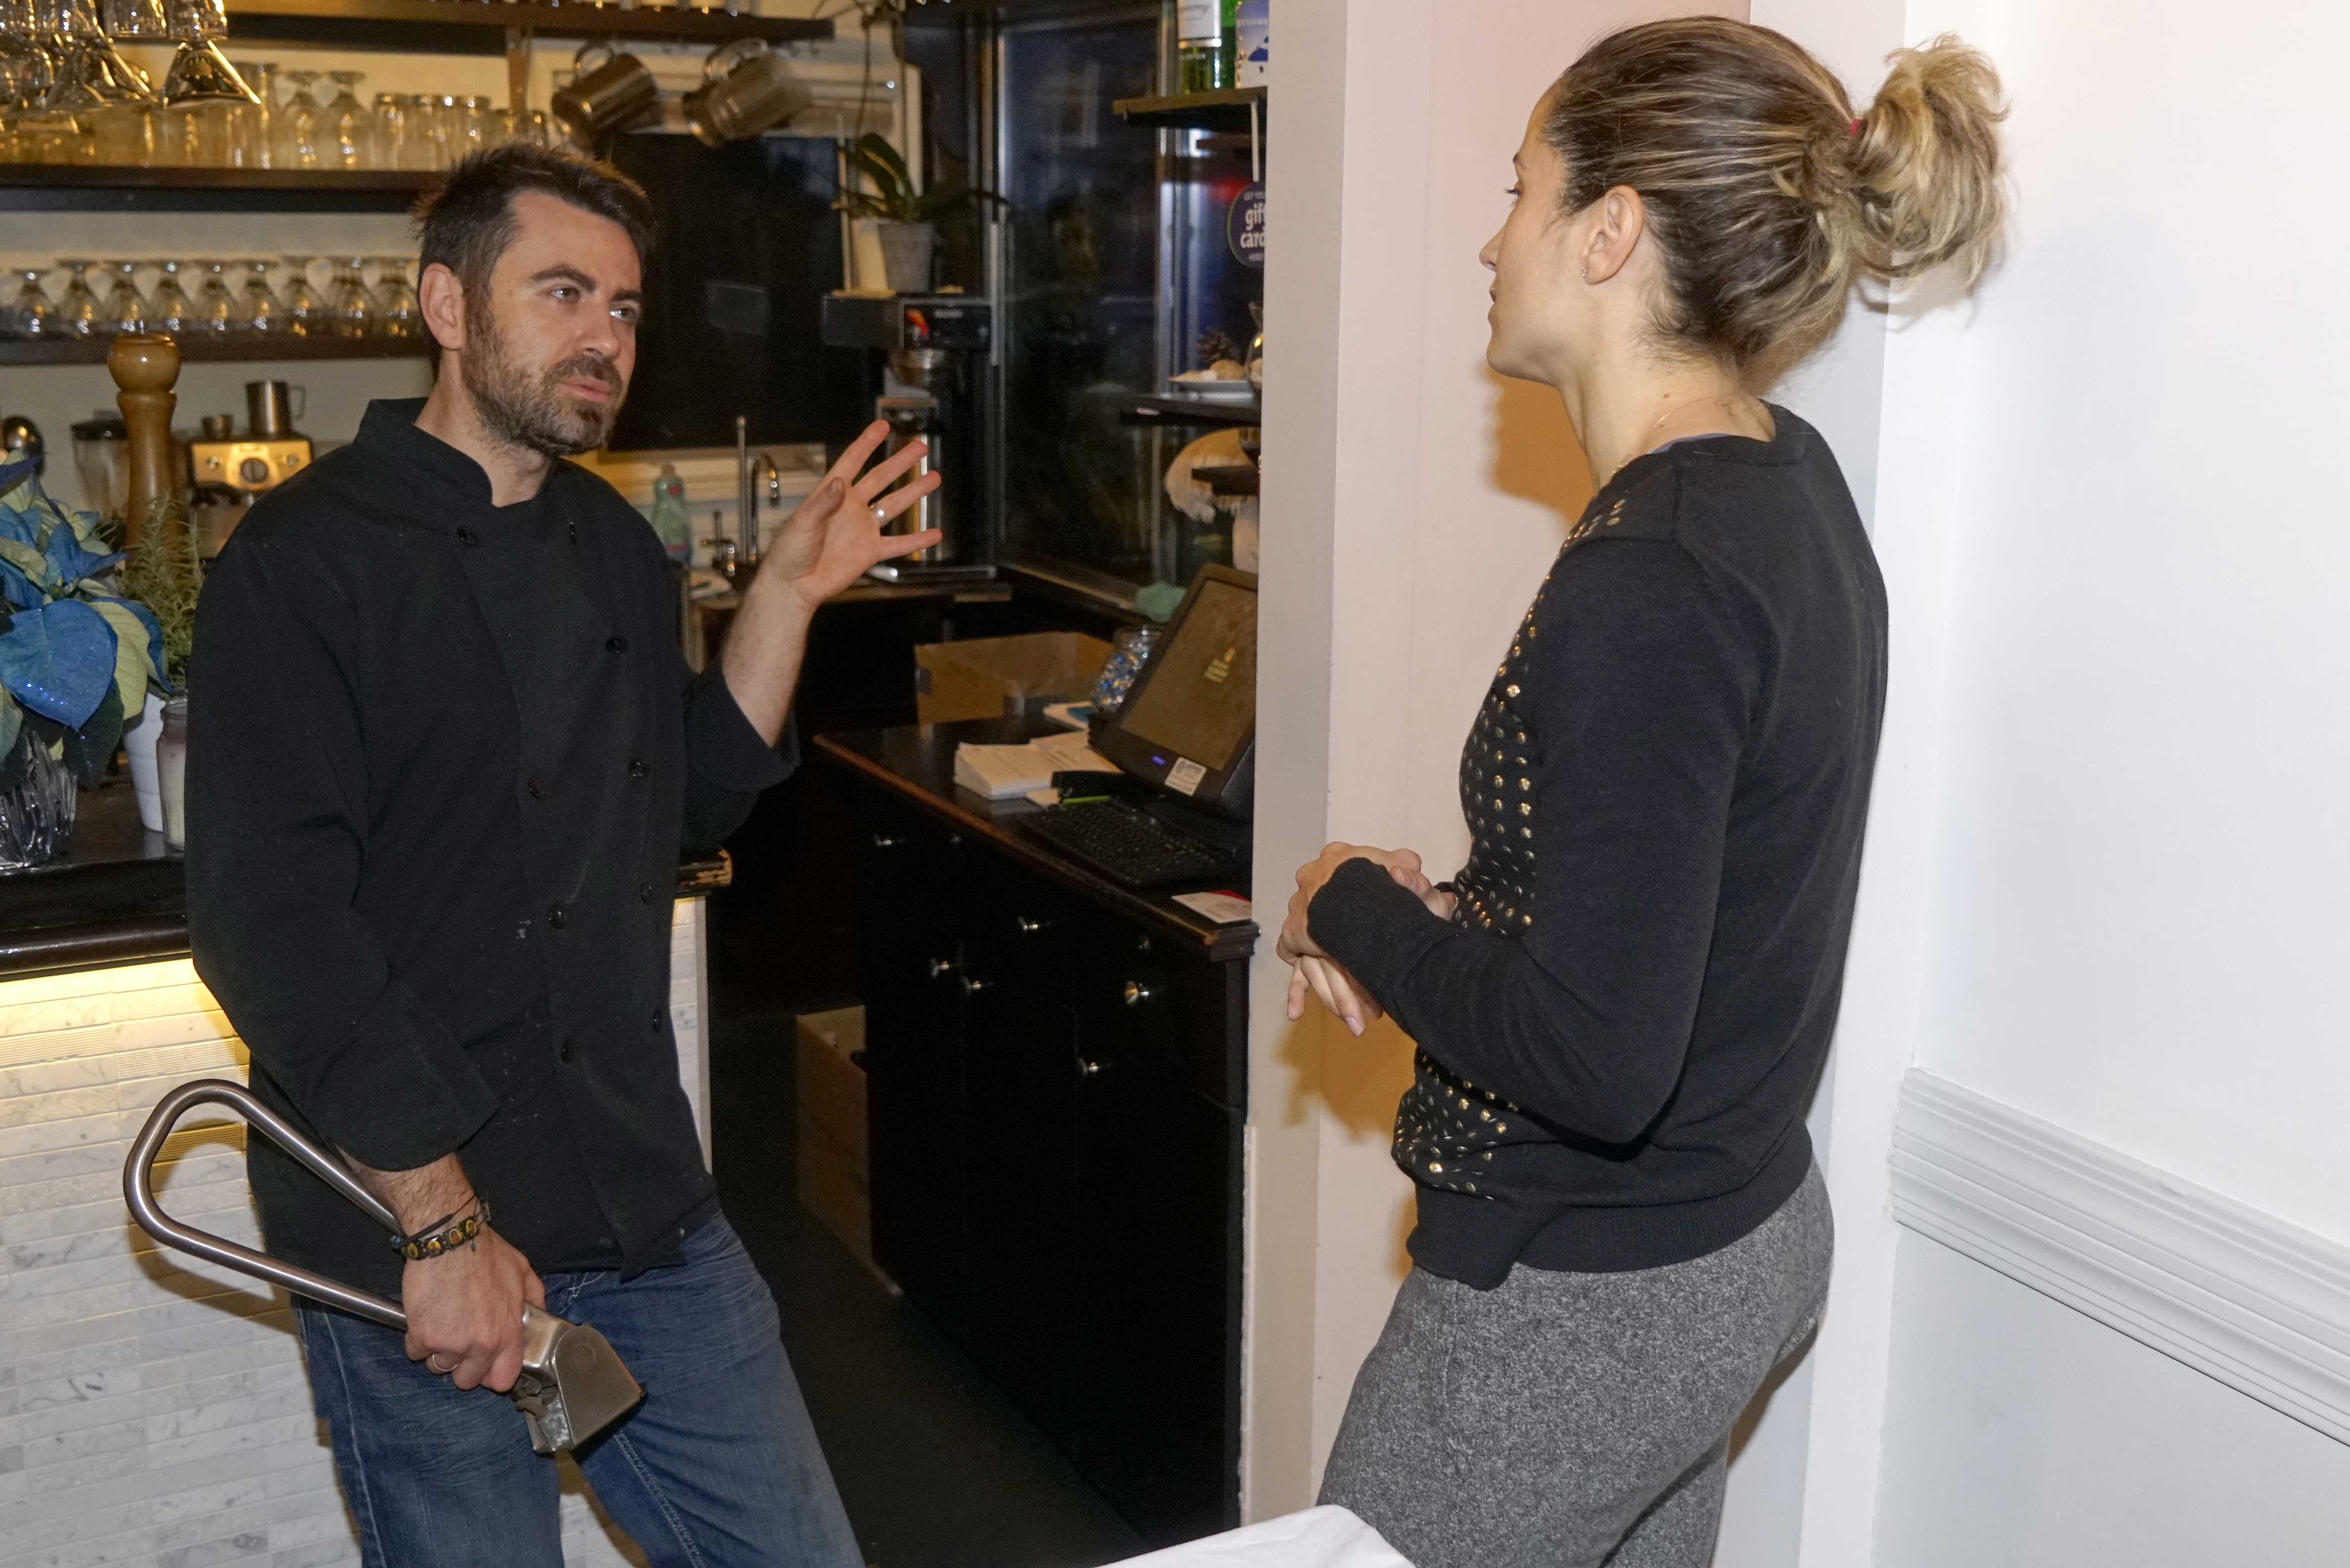 Nikolas of the partners of My Greek Place holding the subway handle while having a conversation with Emille